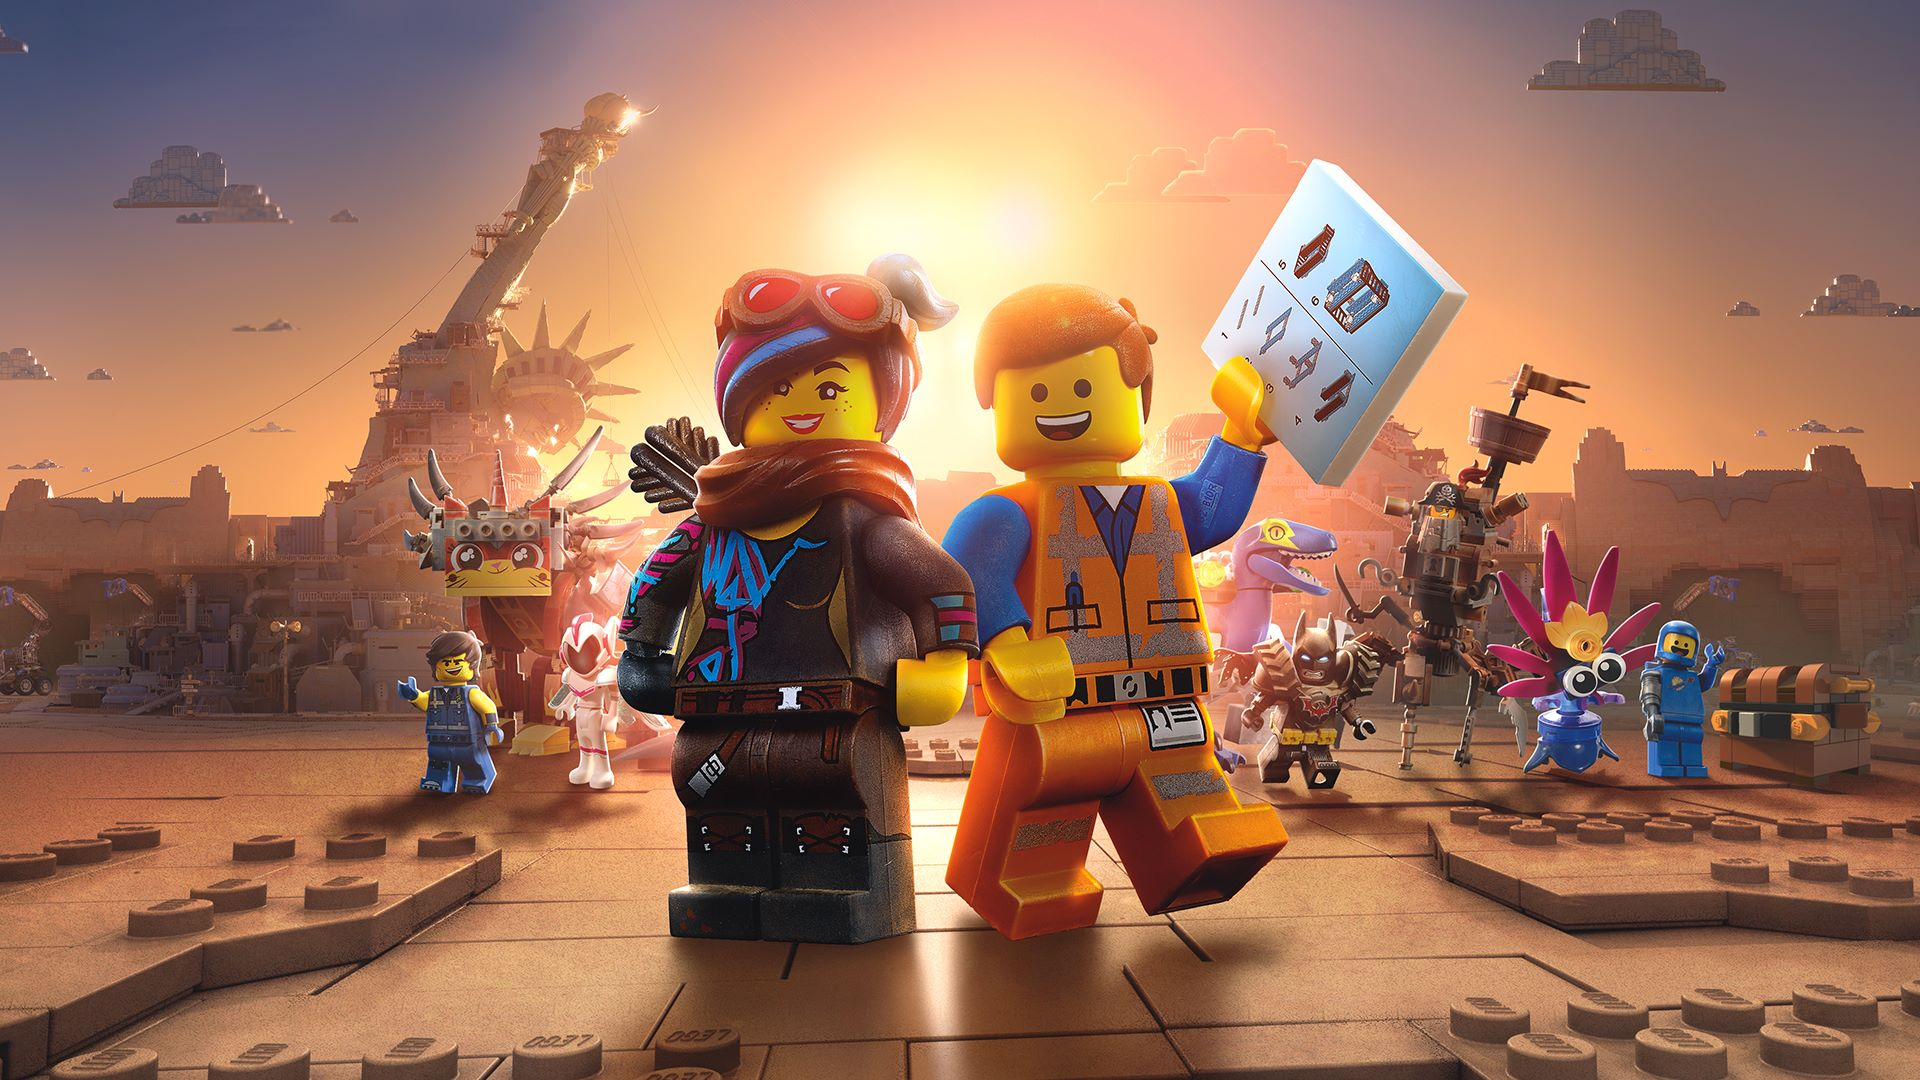 Buy The LEGO Movie 2 Videogame   Microsoft Store en CA 1920x1080